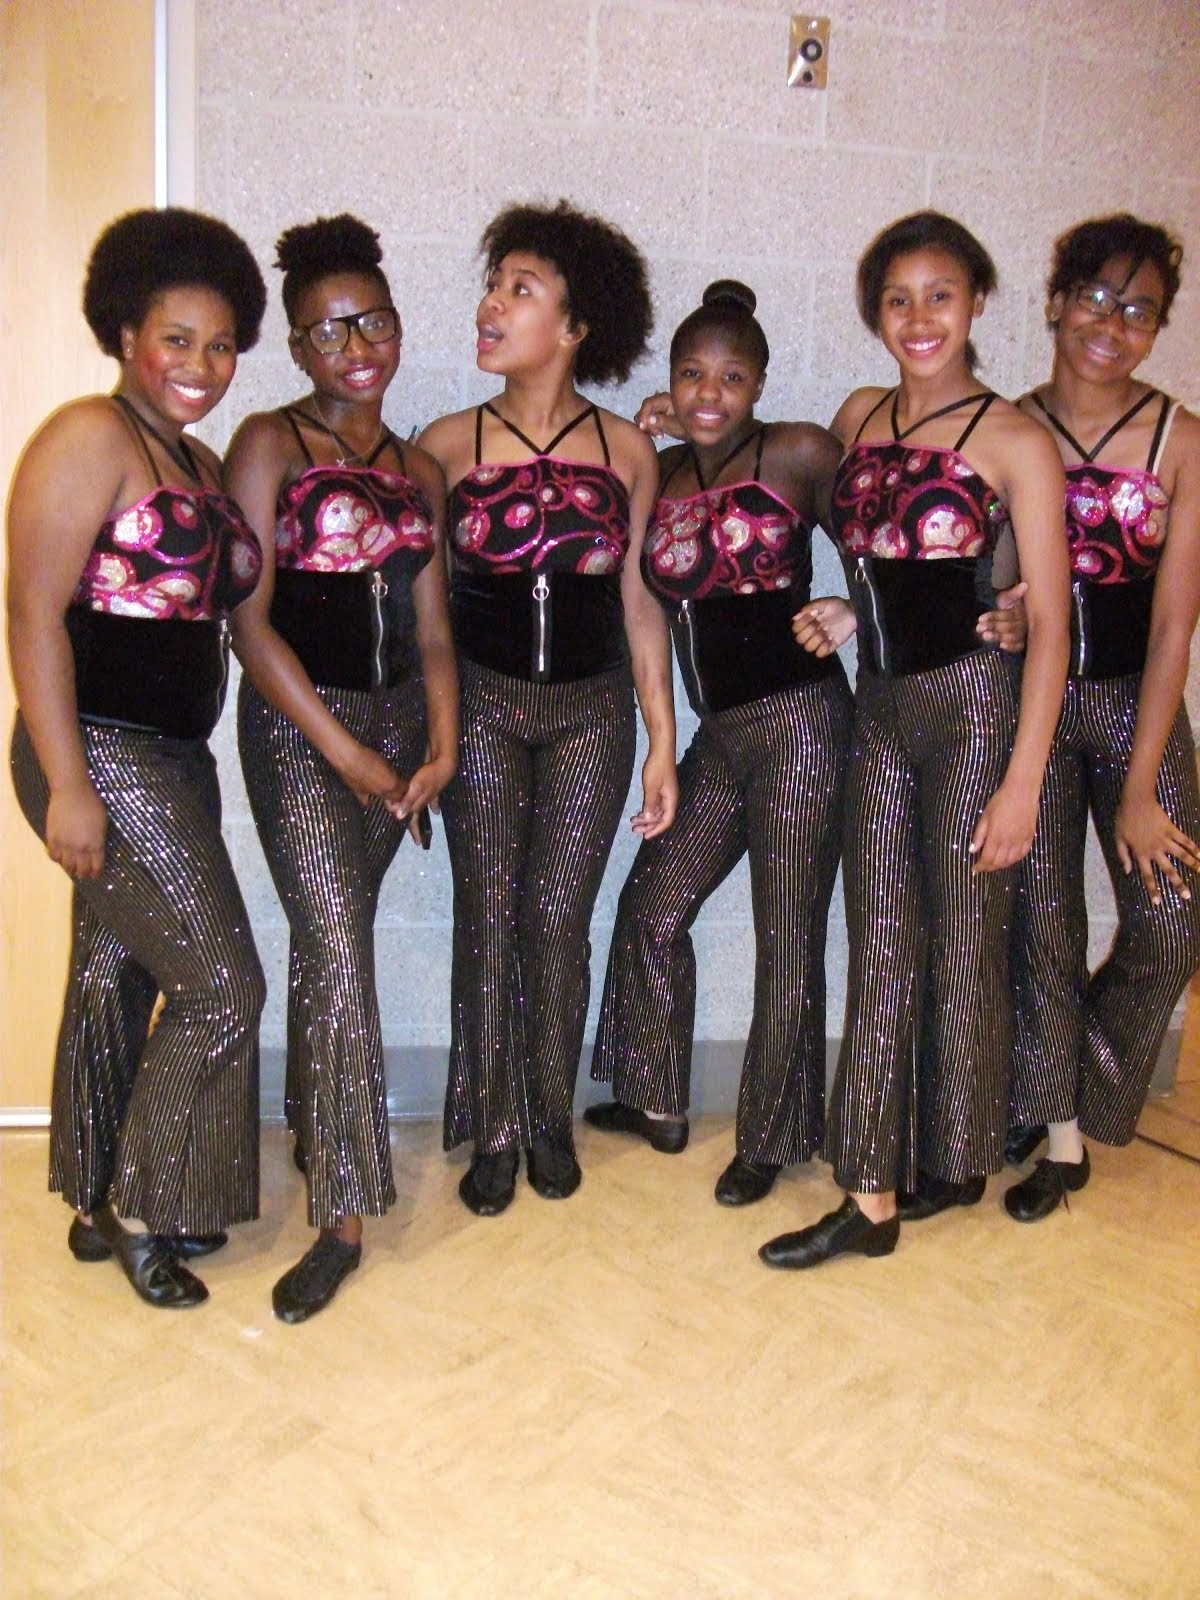 Dancers Backstage in COOL,